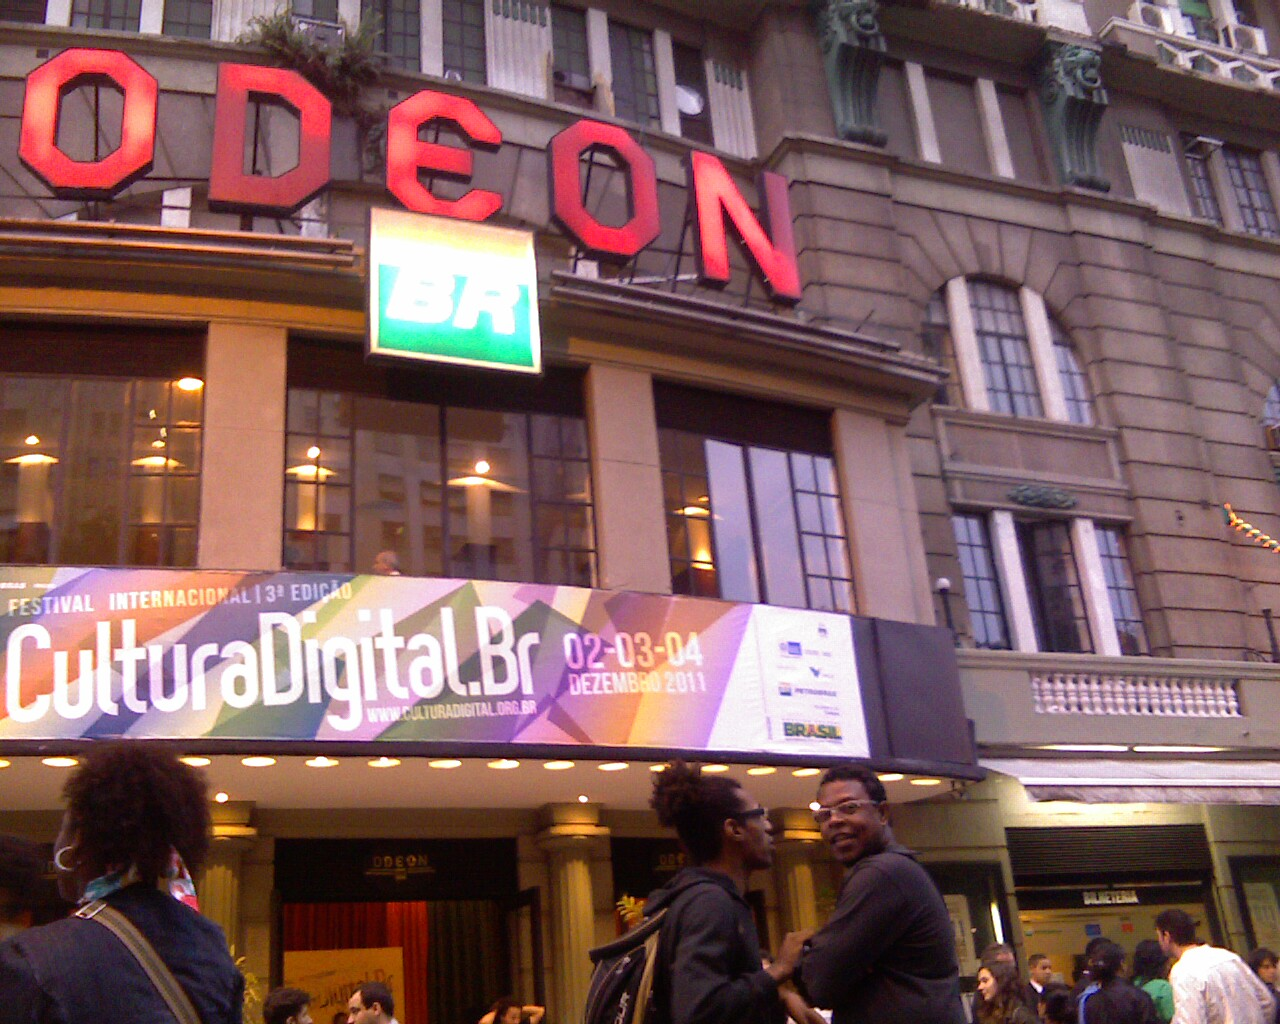 Odeon #CulturaDigitalBR